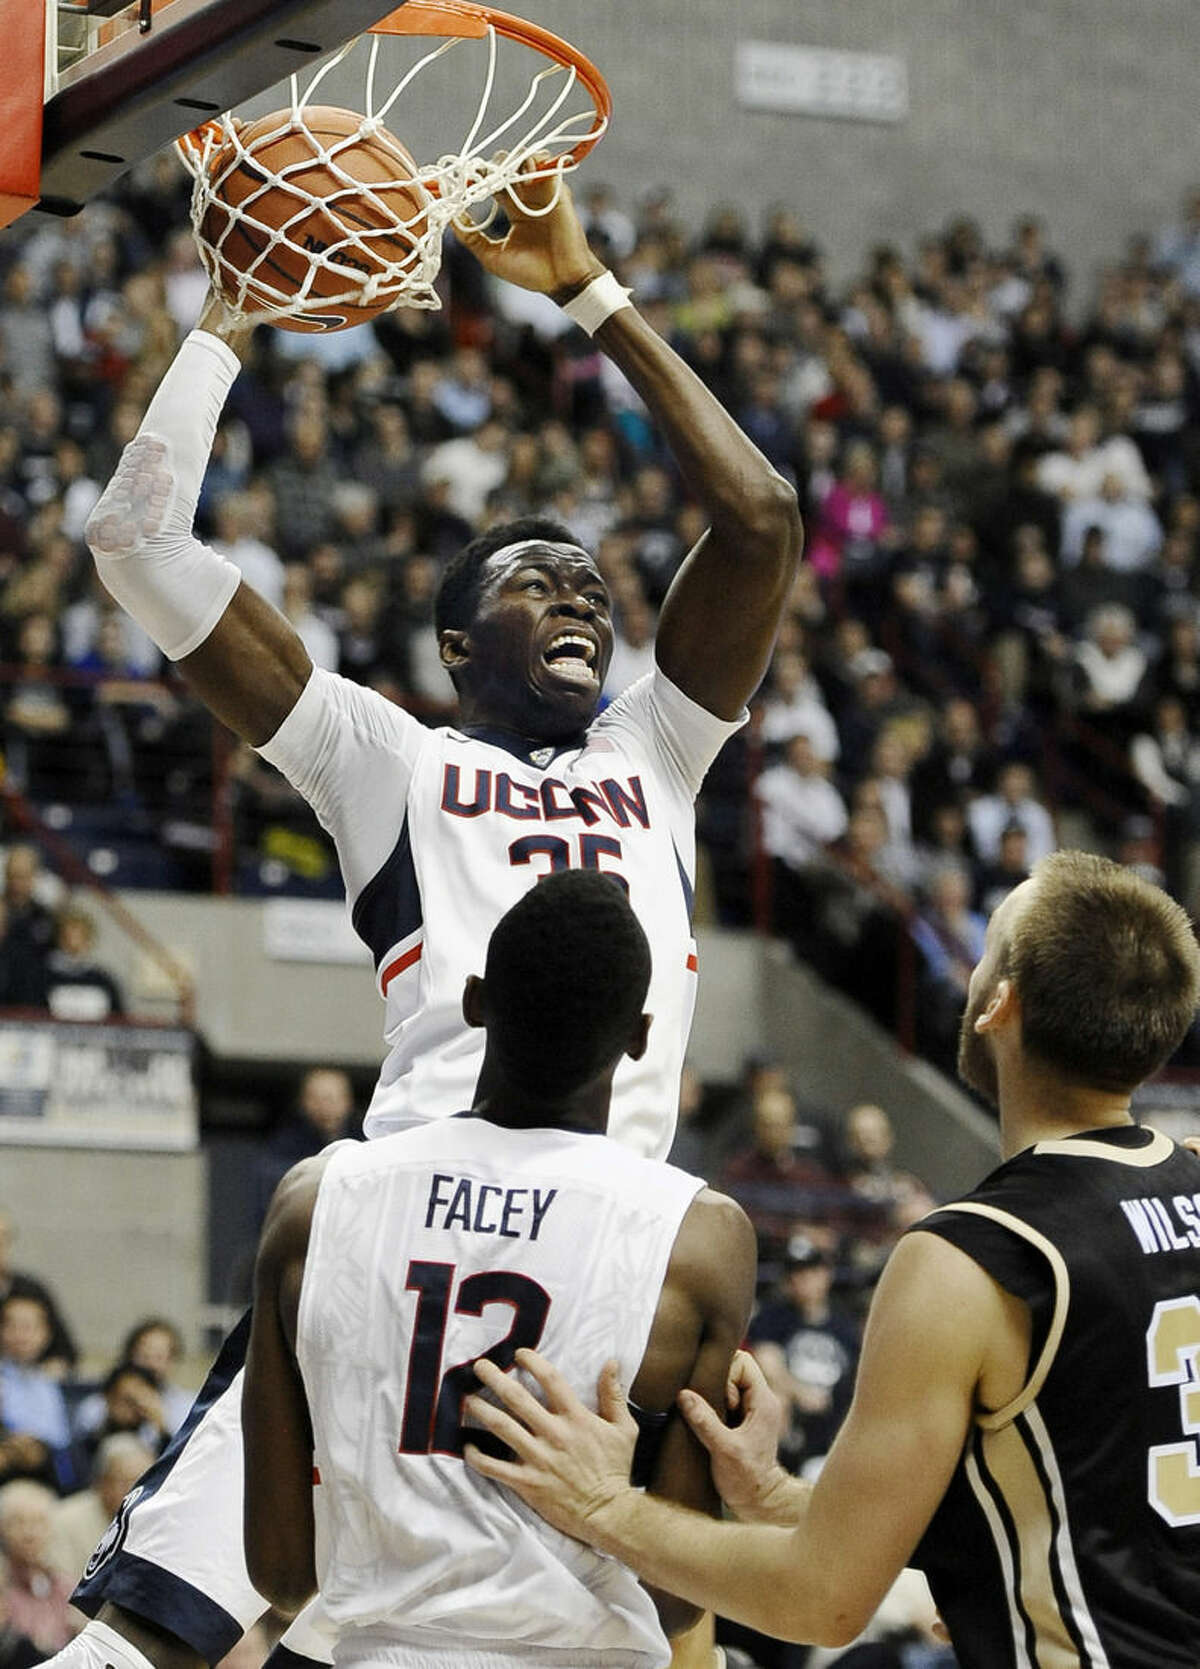 Connecticut's Amida Brimah dunks during the second half of an NCAA college basketball game against UCF, Thursday, Jan. 22, 2015, in Storrs, Conn. Connecticut won 67-60. (AP Photo/Jessica Hill)